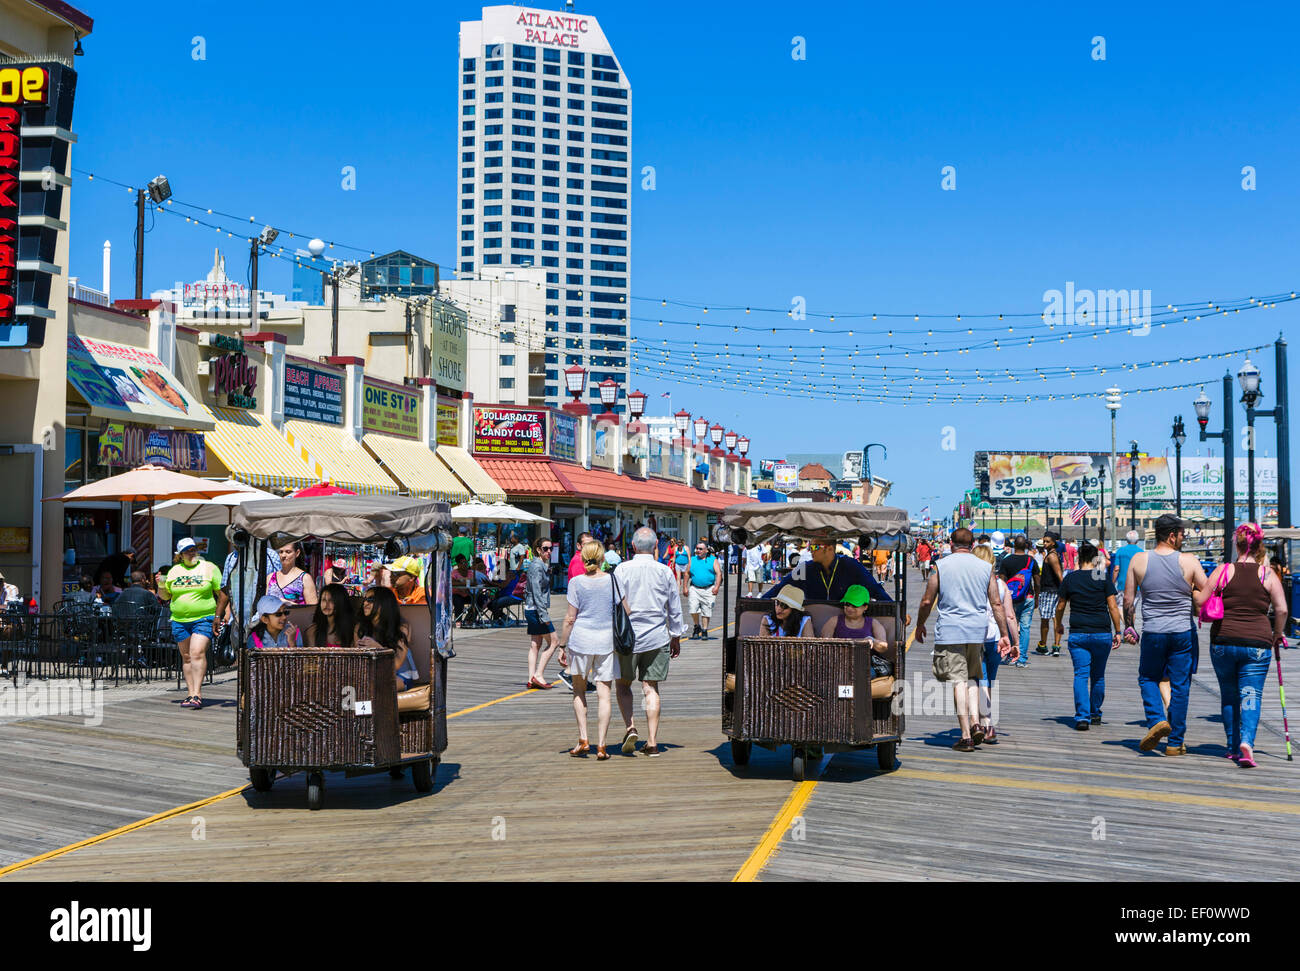 Famous Rolling Chairs on the boardwalk in Atlantic City, New Jersey, USA - Stock Image